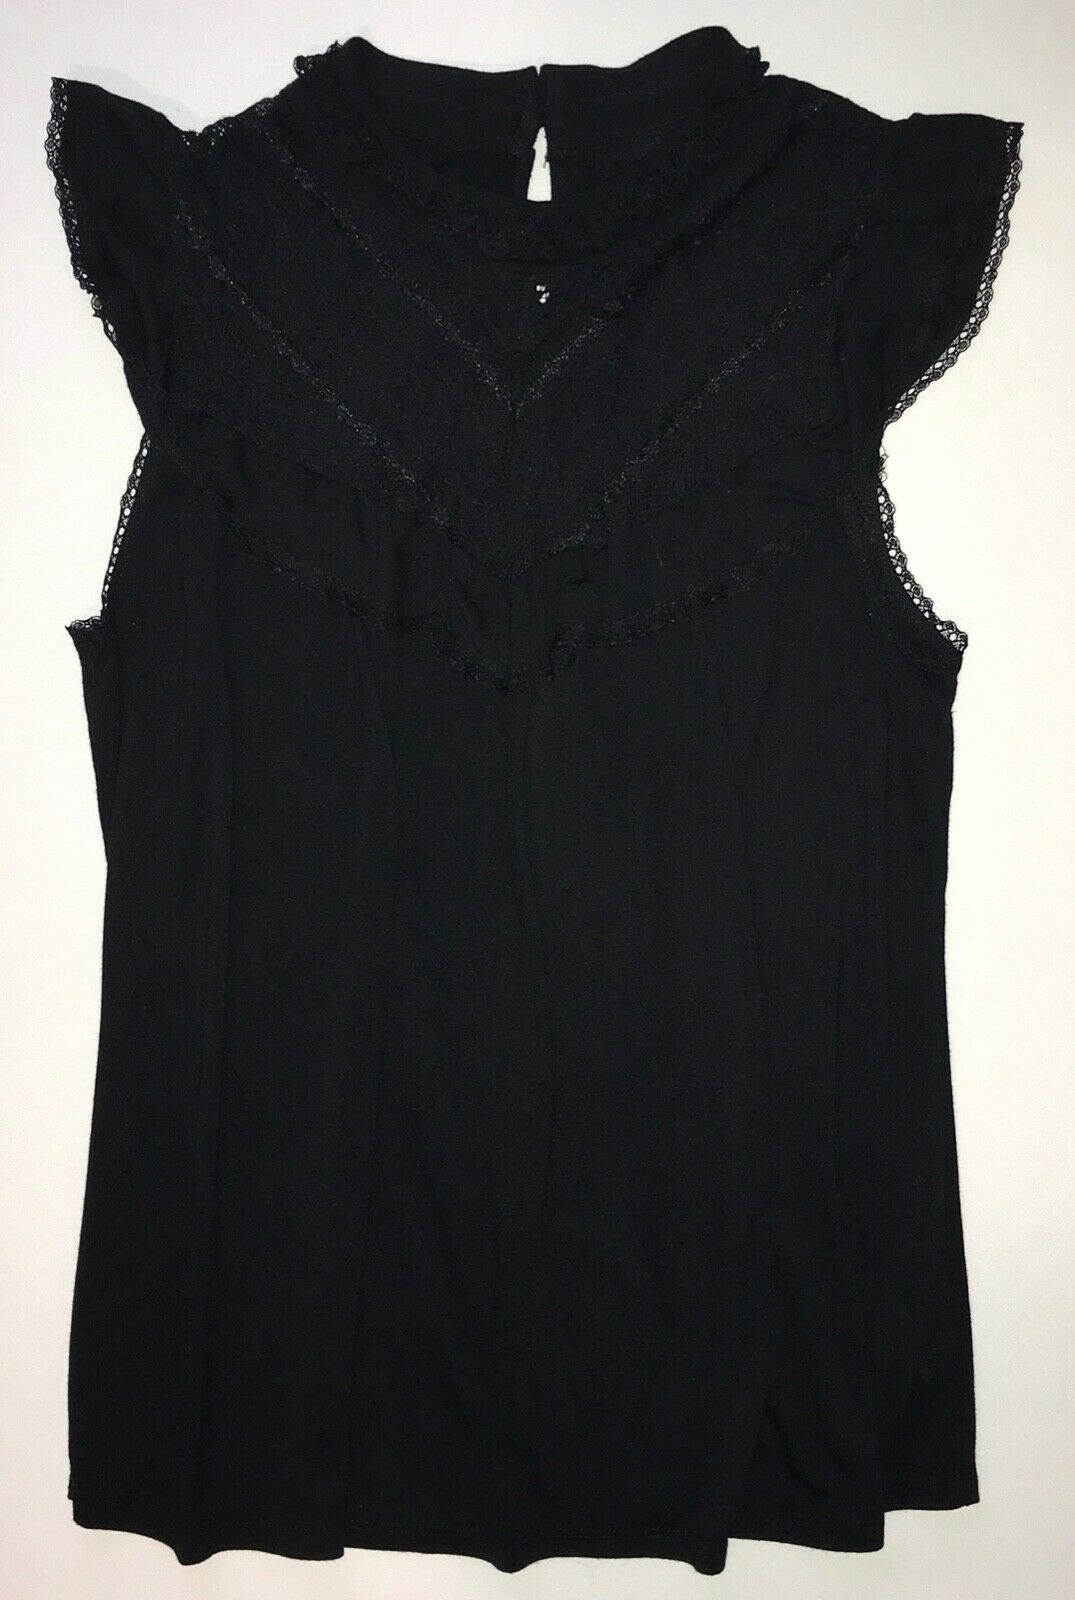 Primary image for Lace Bib Front Sleeveless Blouse in Black by Mossimo in Medium